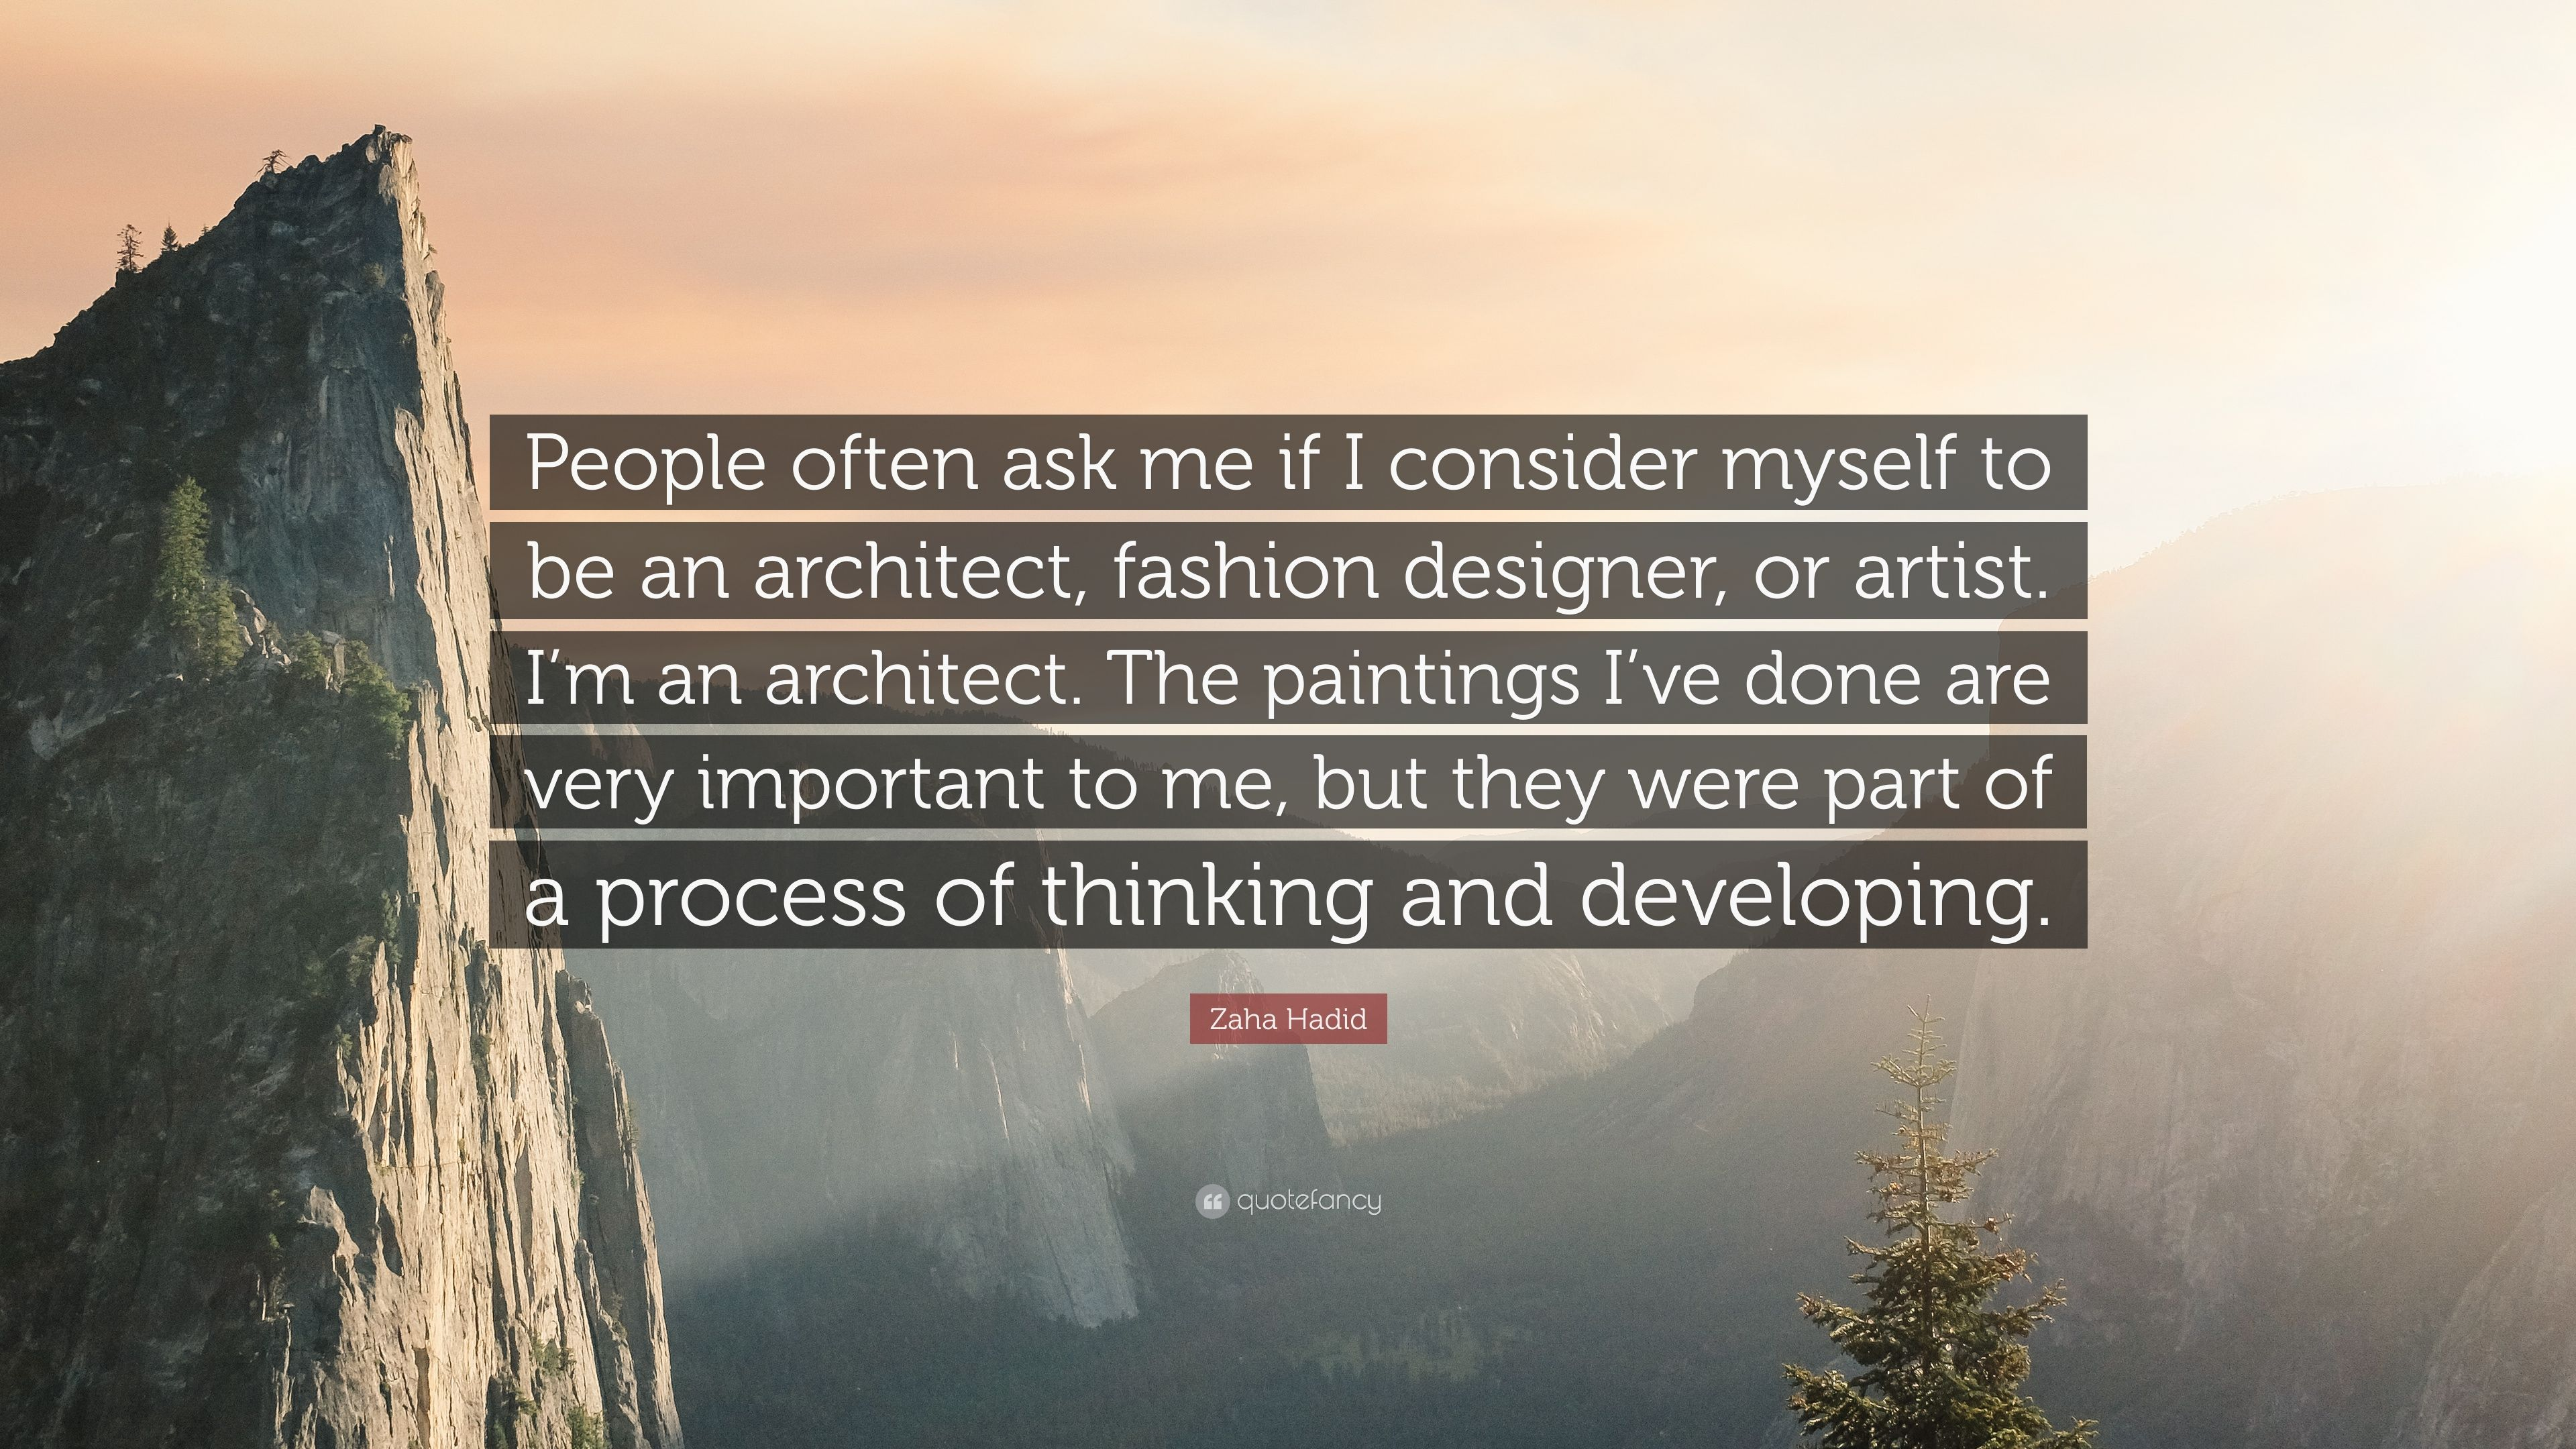 Zaha Hadid Quote People Often Ask Me If I Consider Myself To Be An Architect Fashion Designer Or Artist I M An Architect The Painting 7 Wallpapers Quotefancy